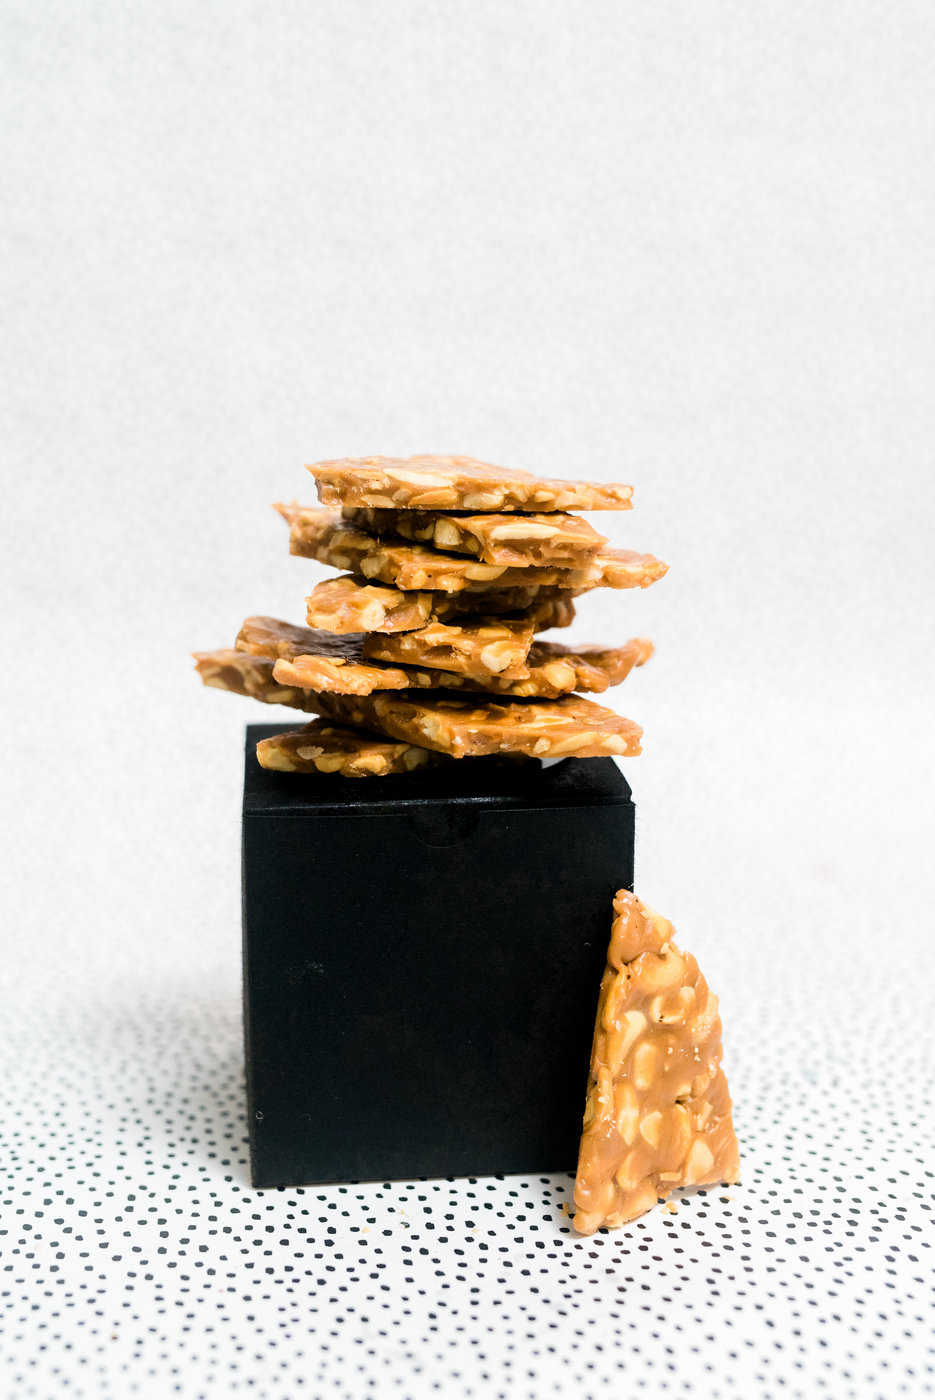 Butter toffee cashew brittle   Haley Richter Photography